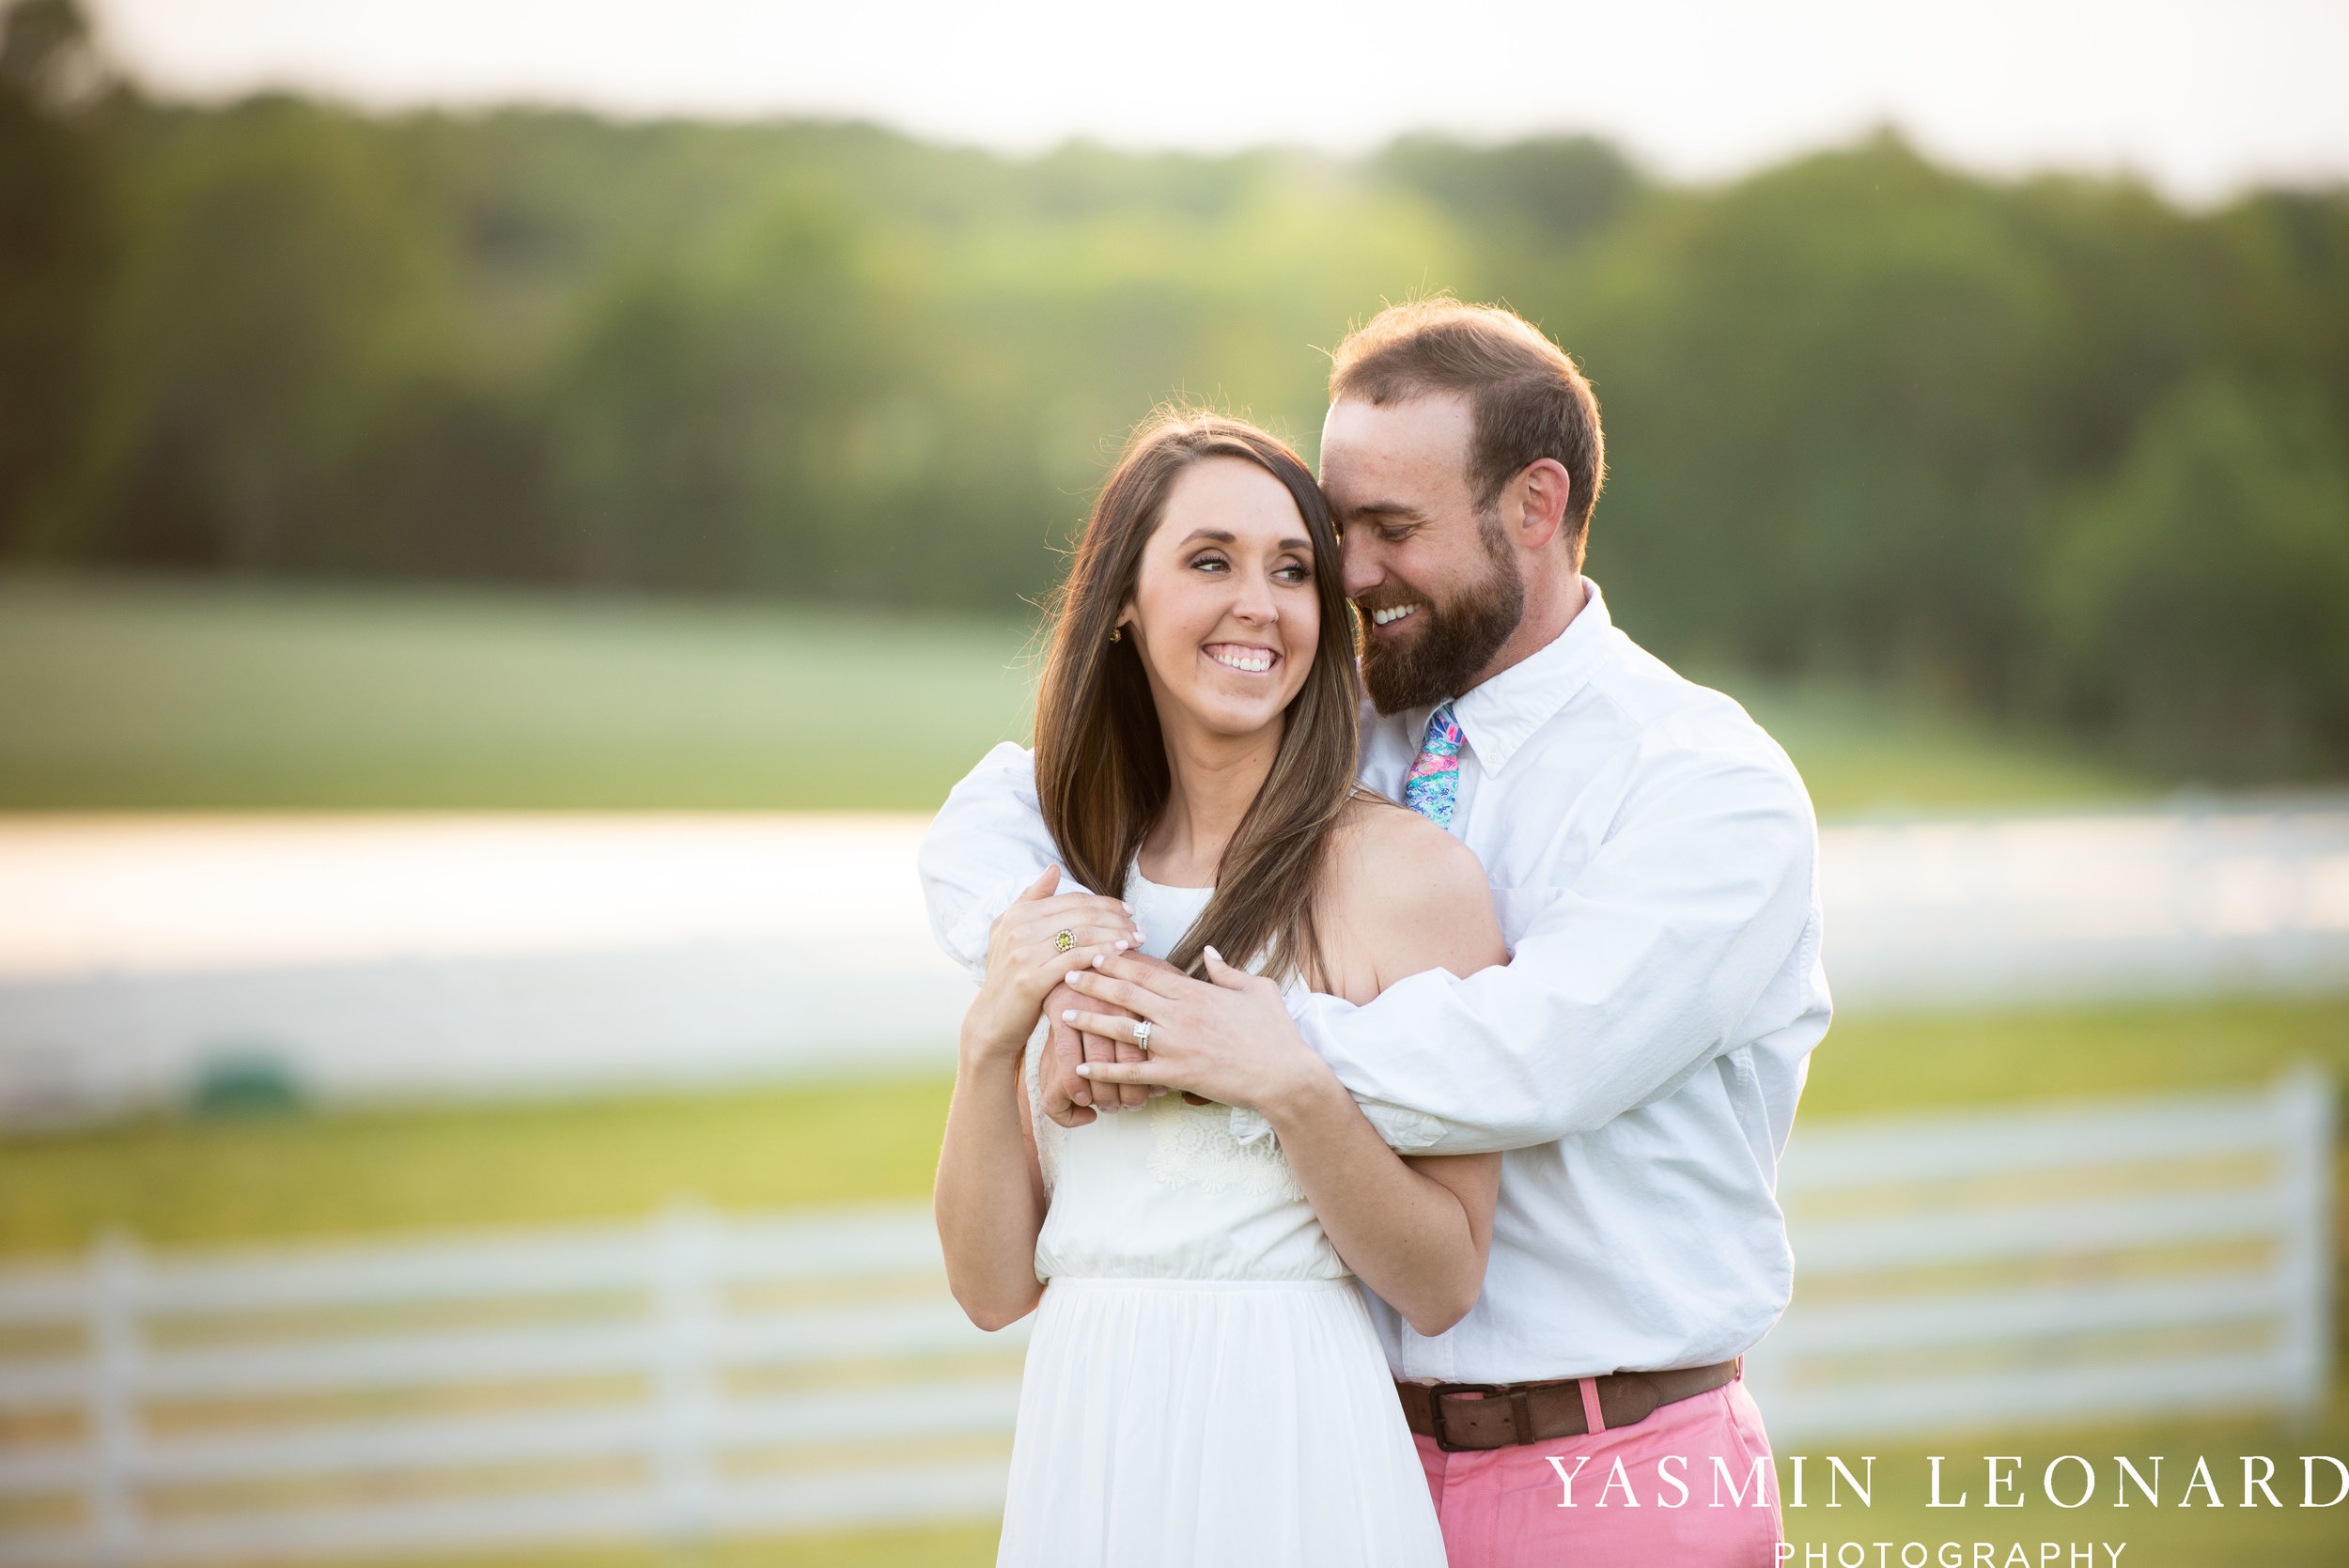 Adaumont Farm - Michael and Stacey - Yasmin Leonard Photography-1.jpg